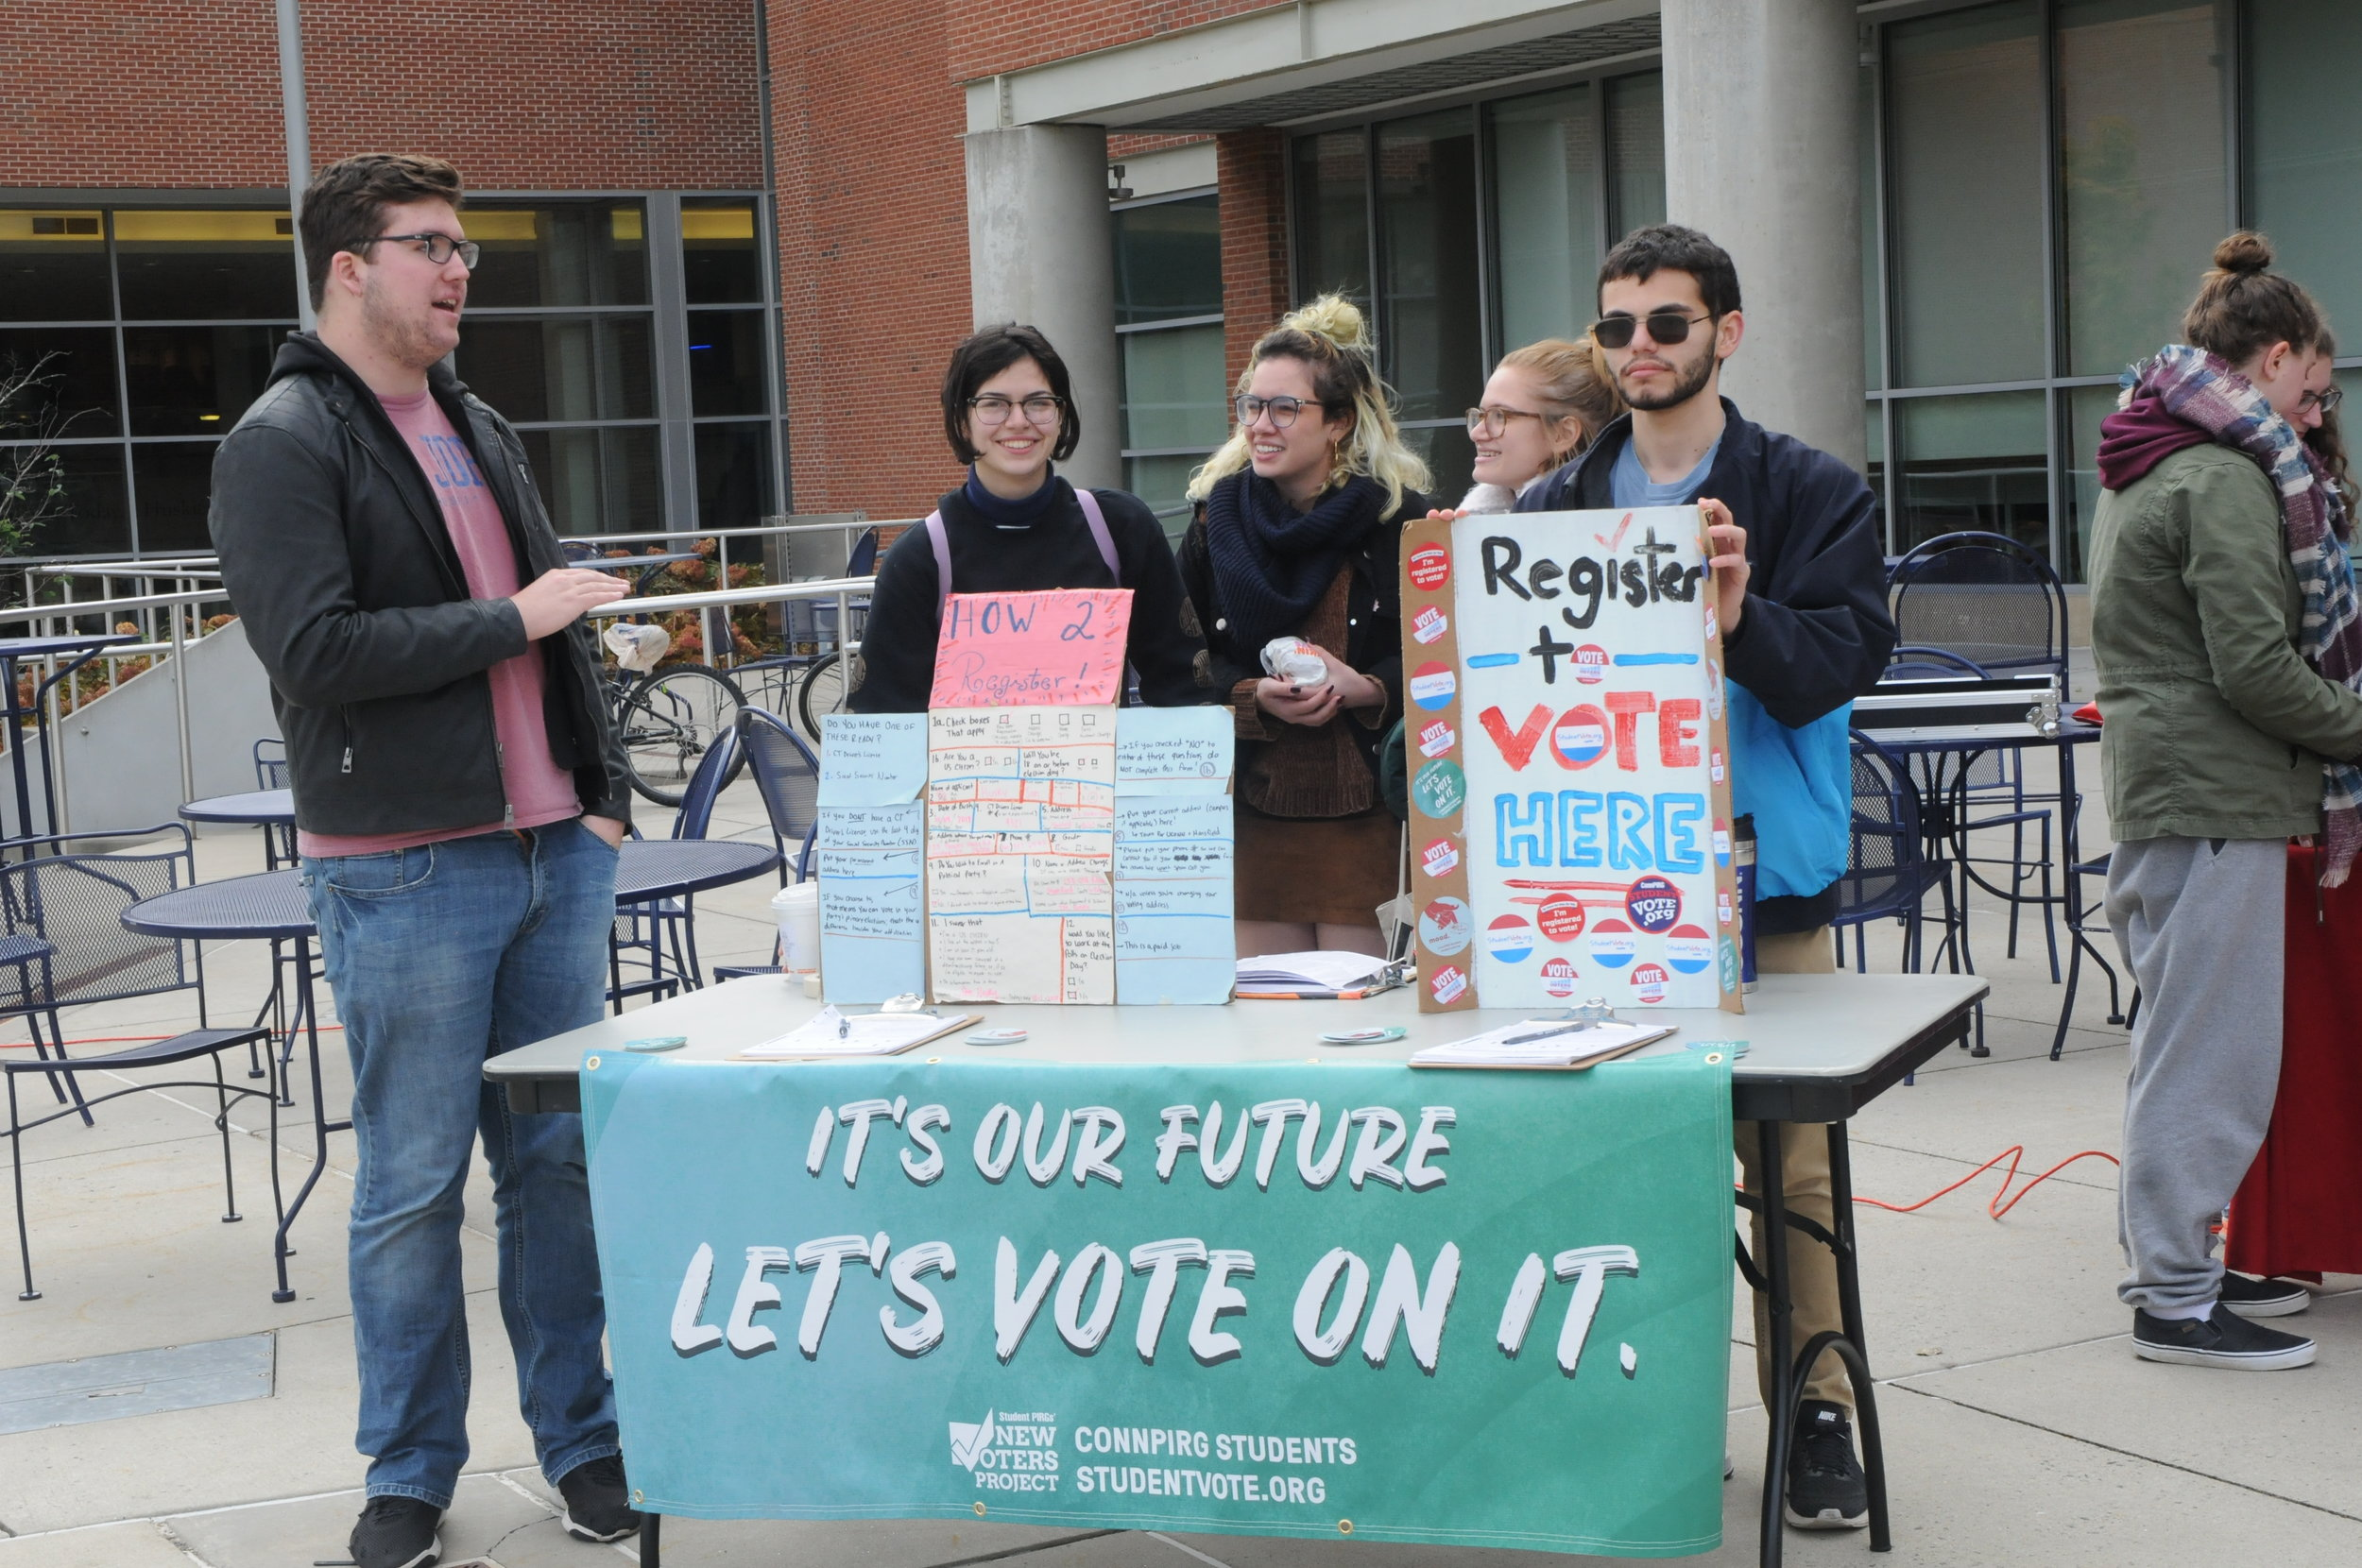 Several University of Connecticut organizations hosted giveaways, talked to students about voting and offered free cake to get students excited about voting in this year's midterm elections at UConnPIRG's Ballot Block Party on Friday. (Brandon Barzola/The Daily Campus)